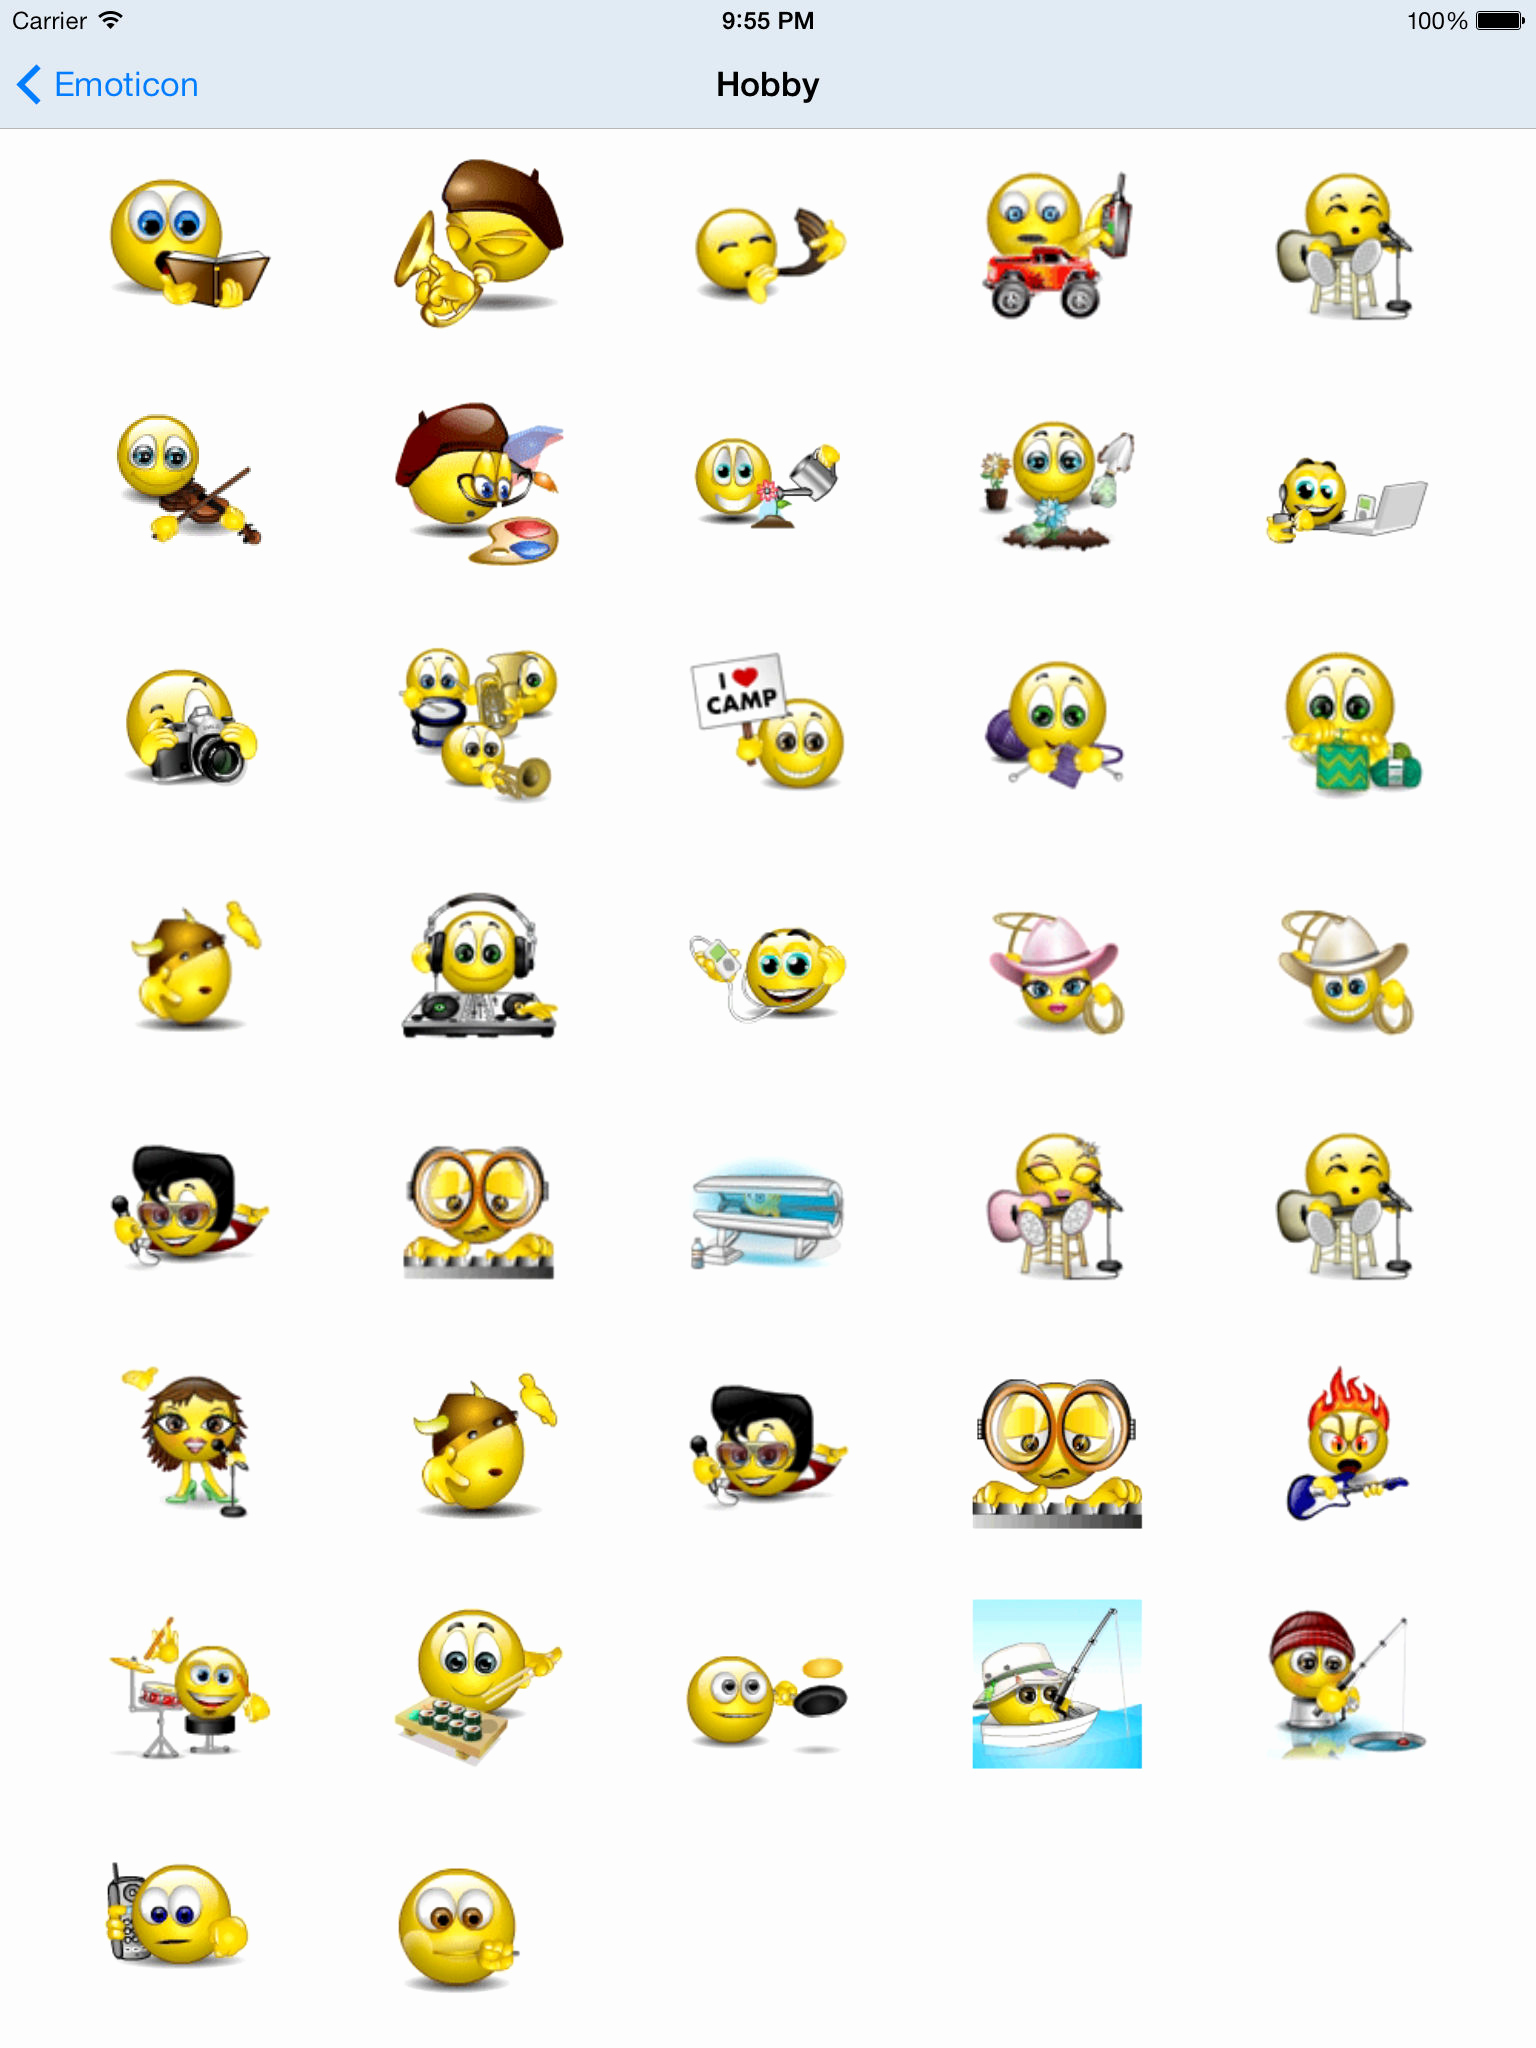 Copy and Paste iPhone Emojis Awesome Animated 3d Emoji Emoticons Free Sms Mms Whatsapp